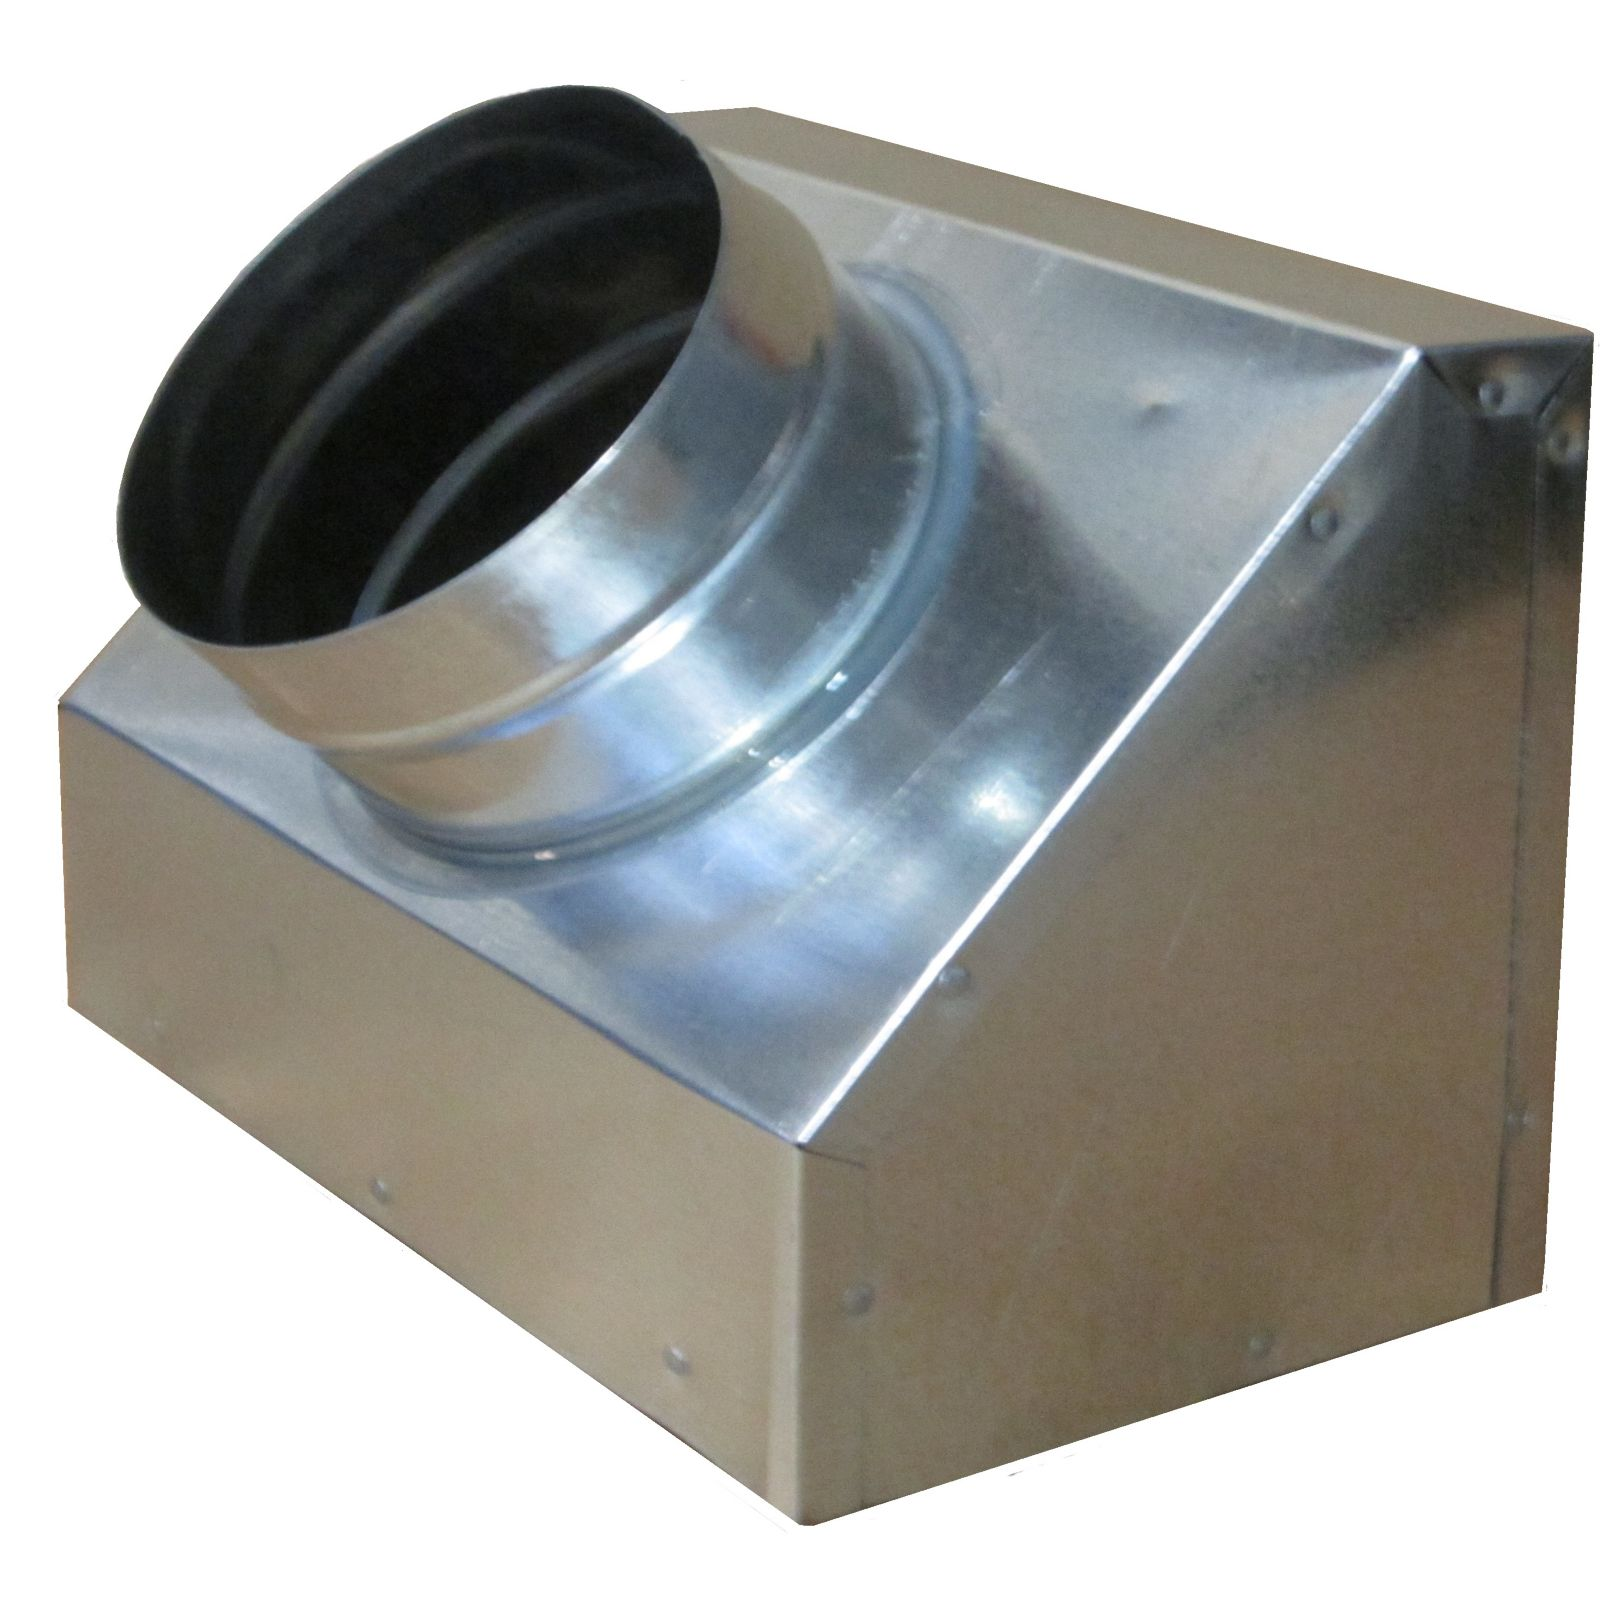 "Snap-Rite 08X04X053600NFS - Metal Top Insulated Slant Register Box No Flange, 08"" x 04"" x 05"" - R6"